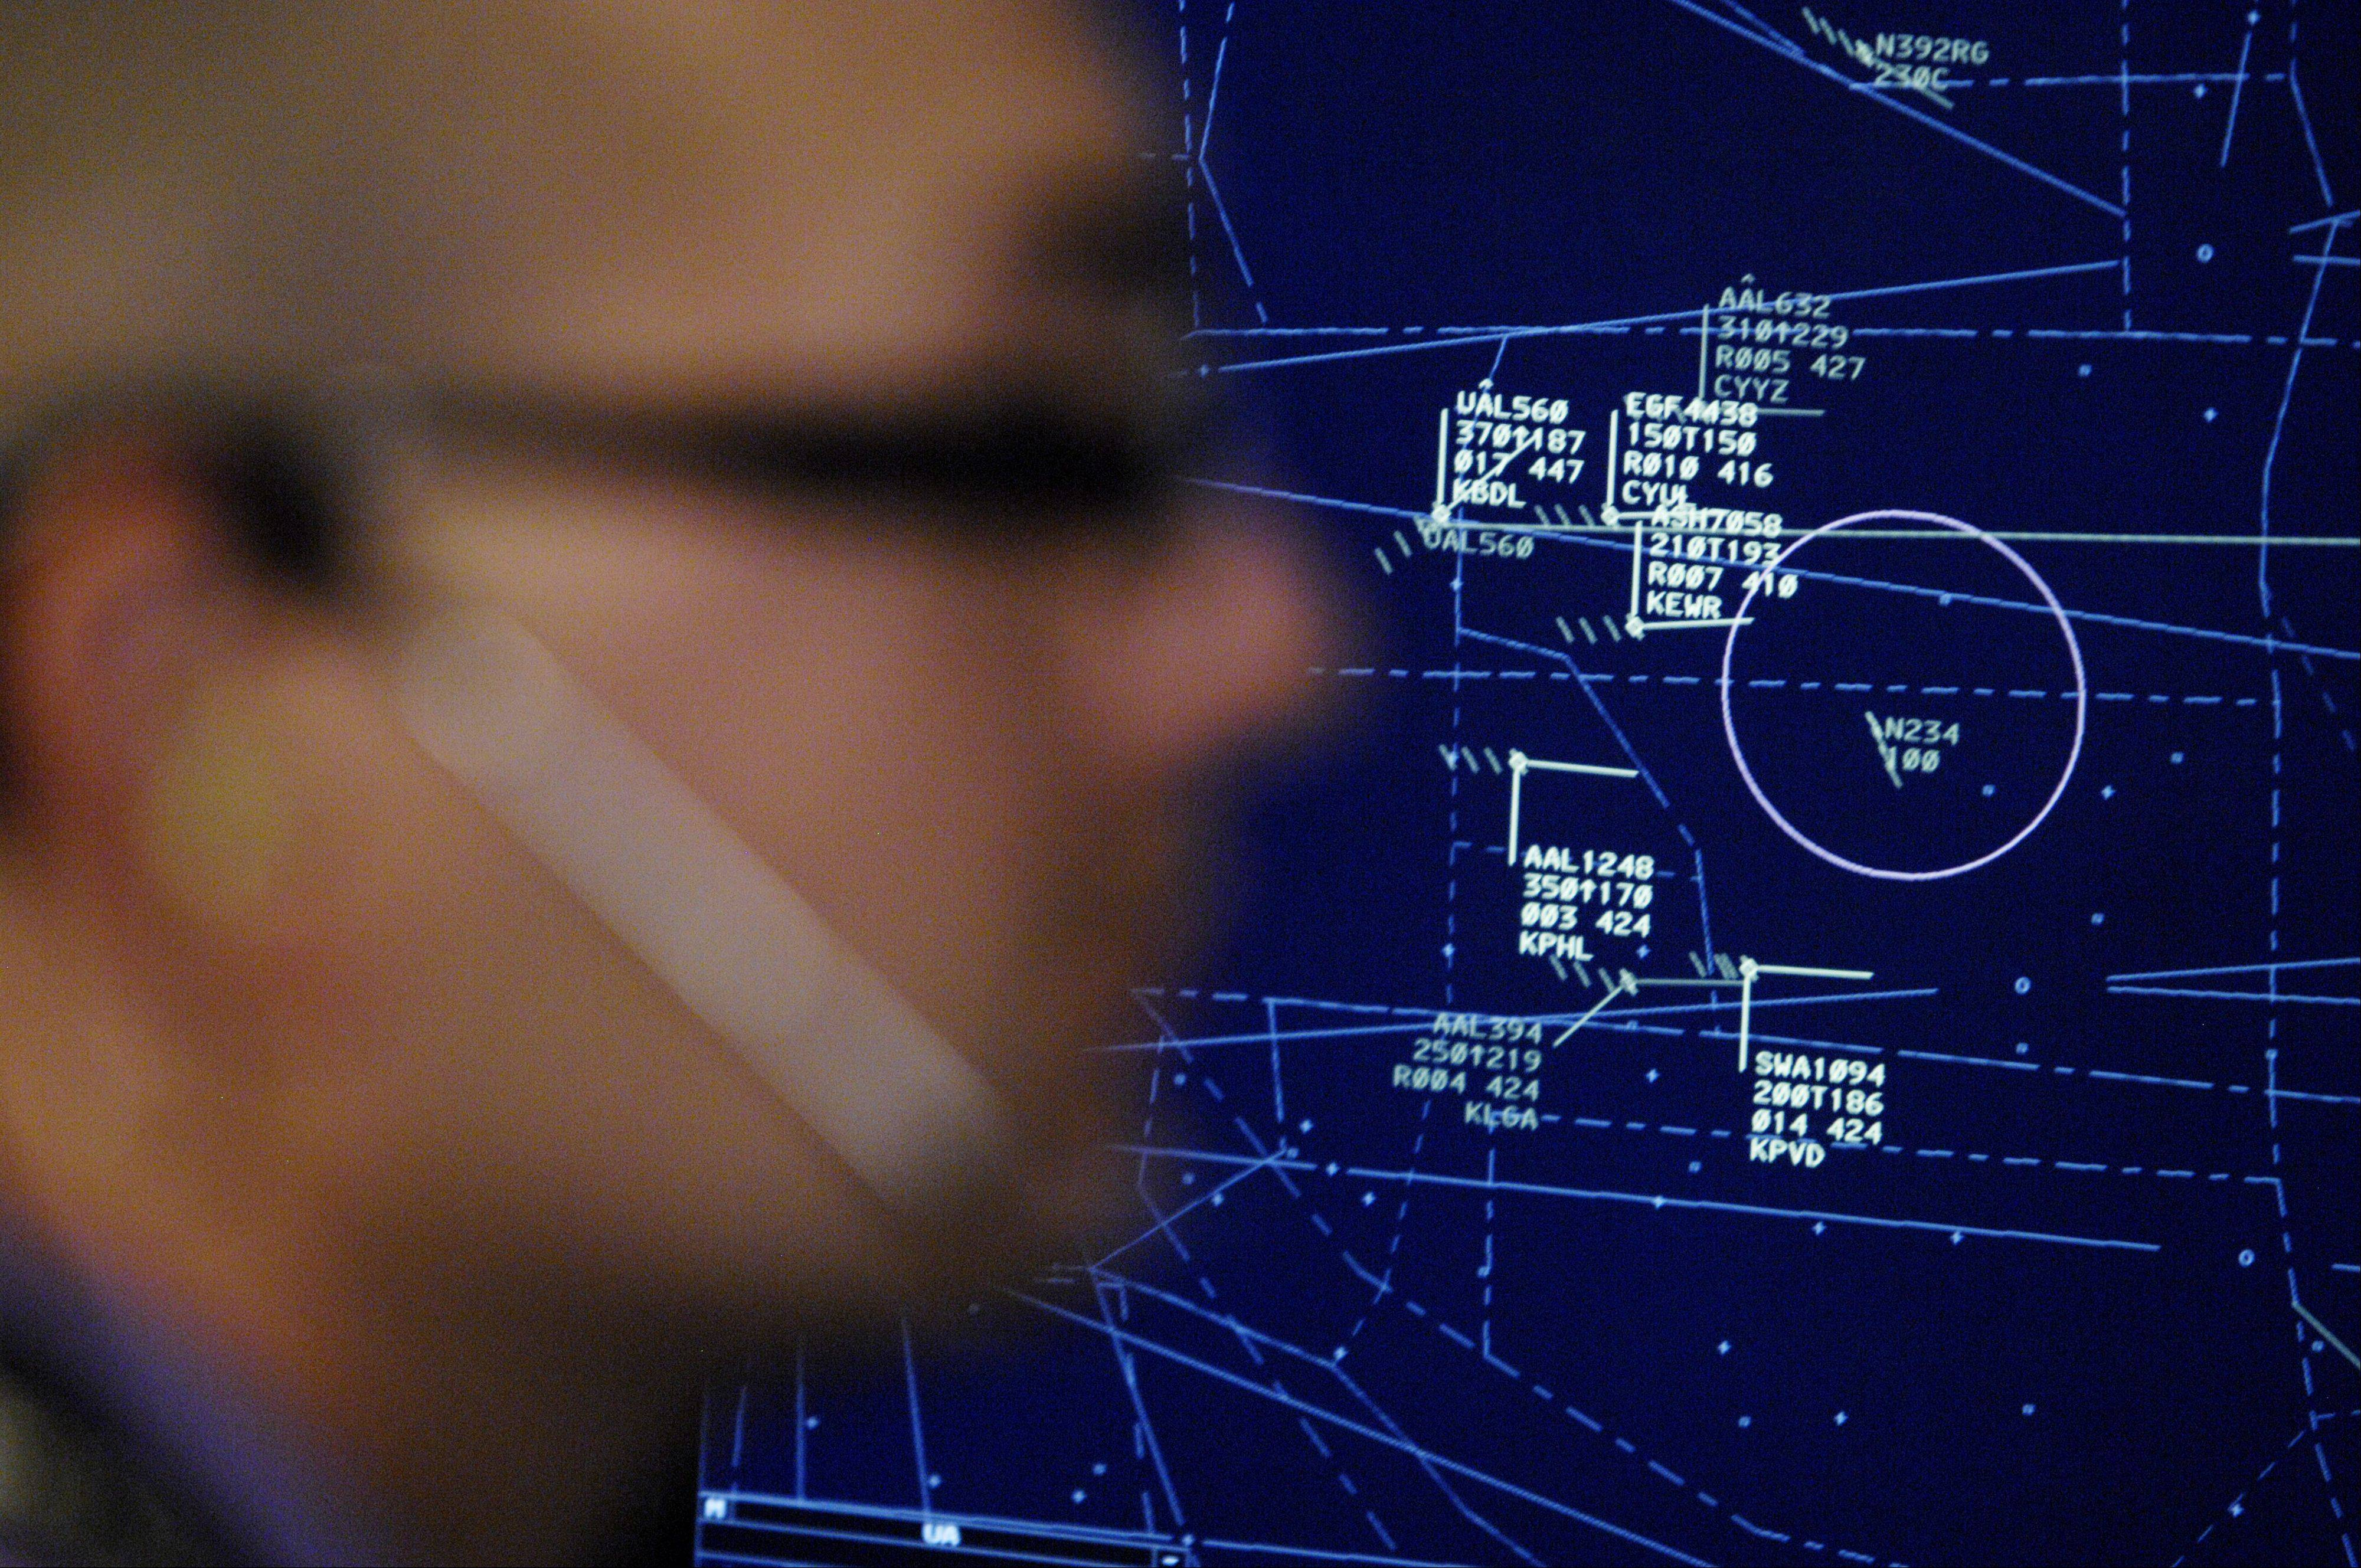 Brad Wilcko works on simulated flights in the training room in the Air Route Traffic Control Center in Aurora.